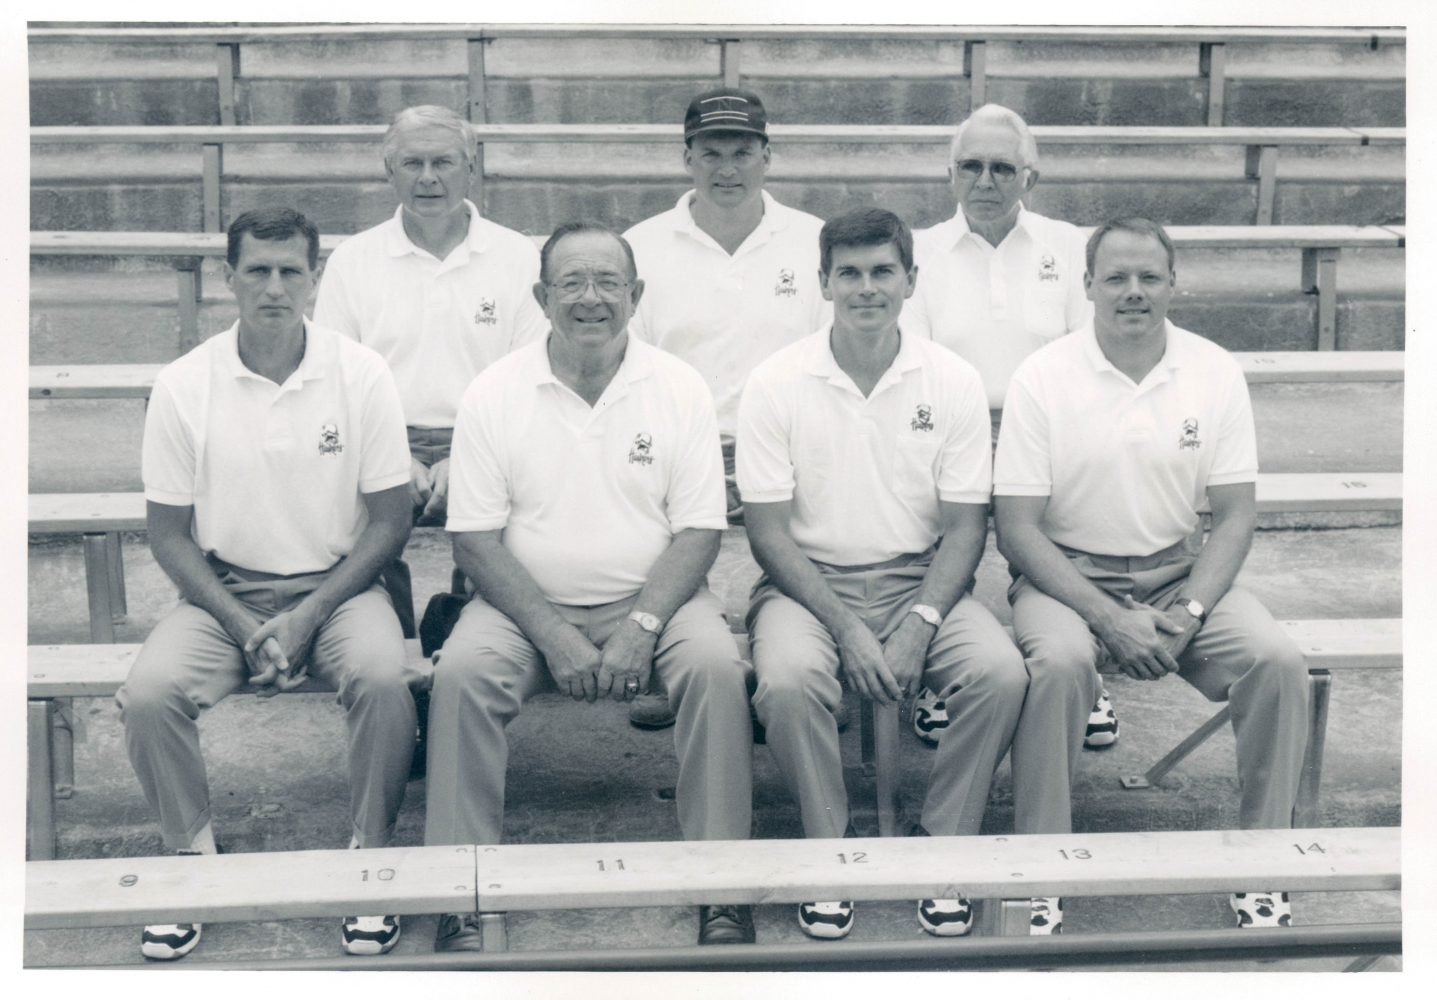 Nebraska Medical/Training Staff ~1994